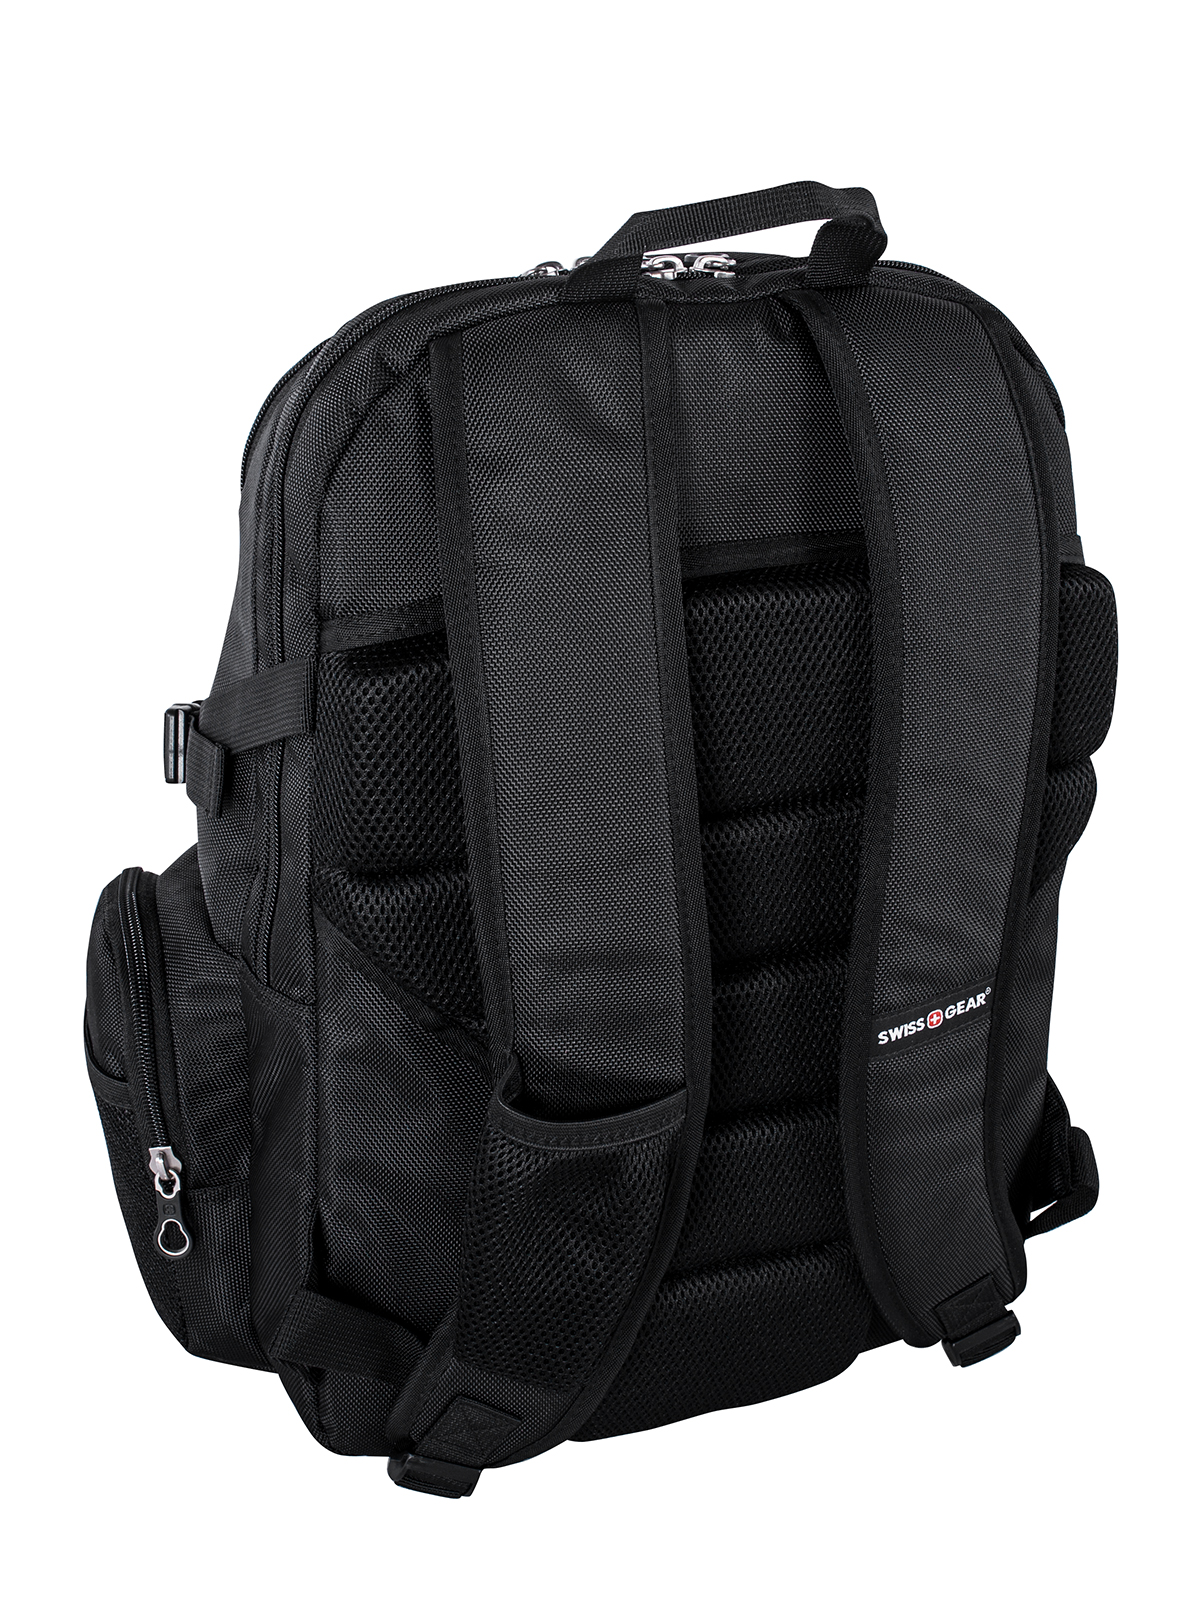 Swiss Gear Backpack Fits Most 17 3 Quot Laptop And Tablet